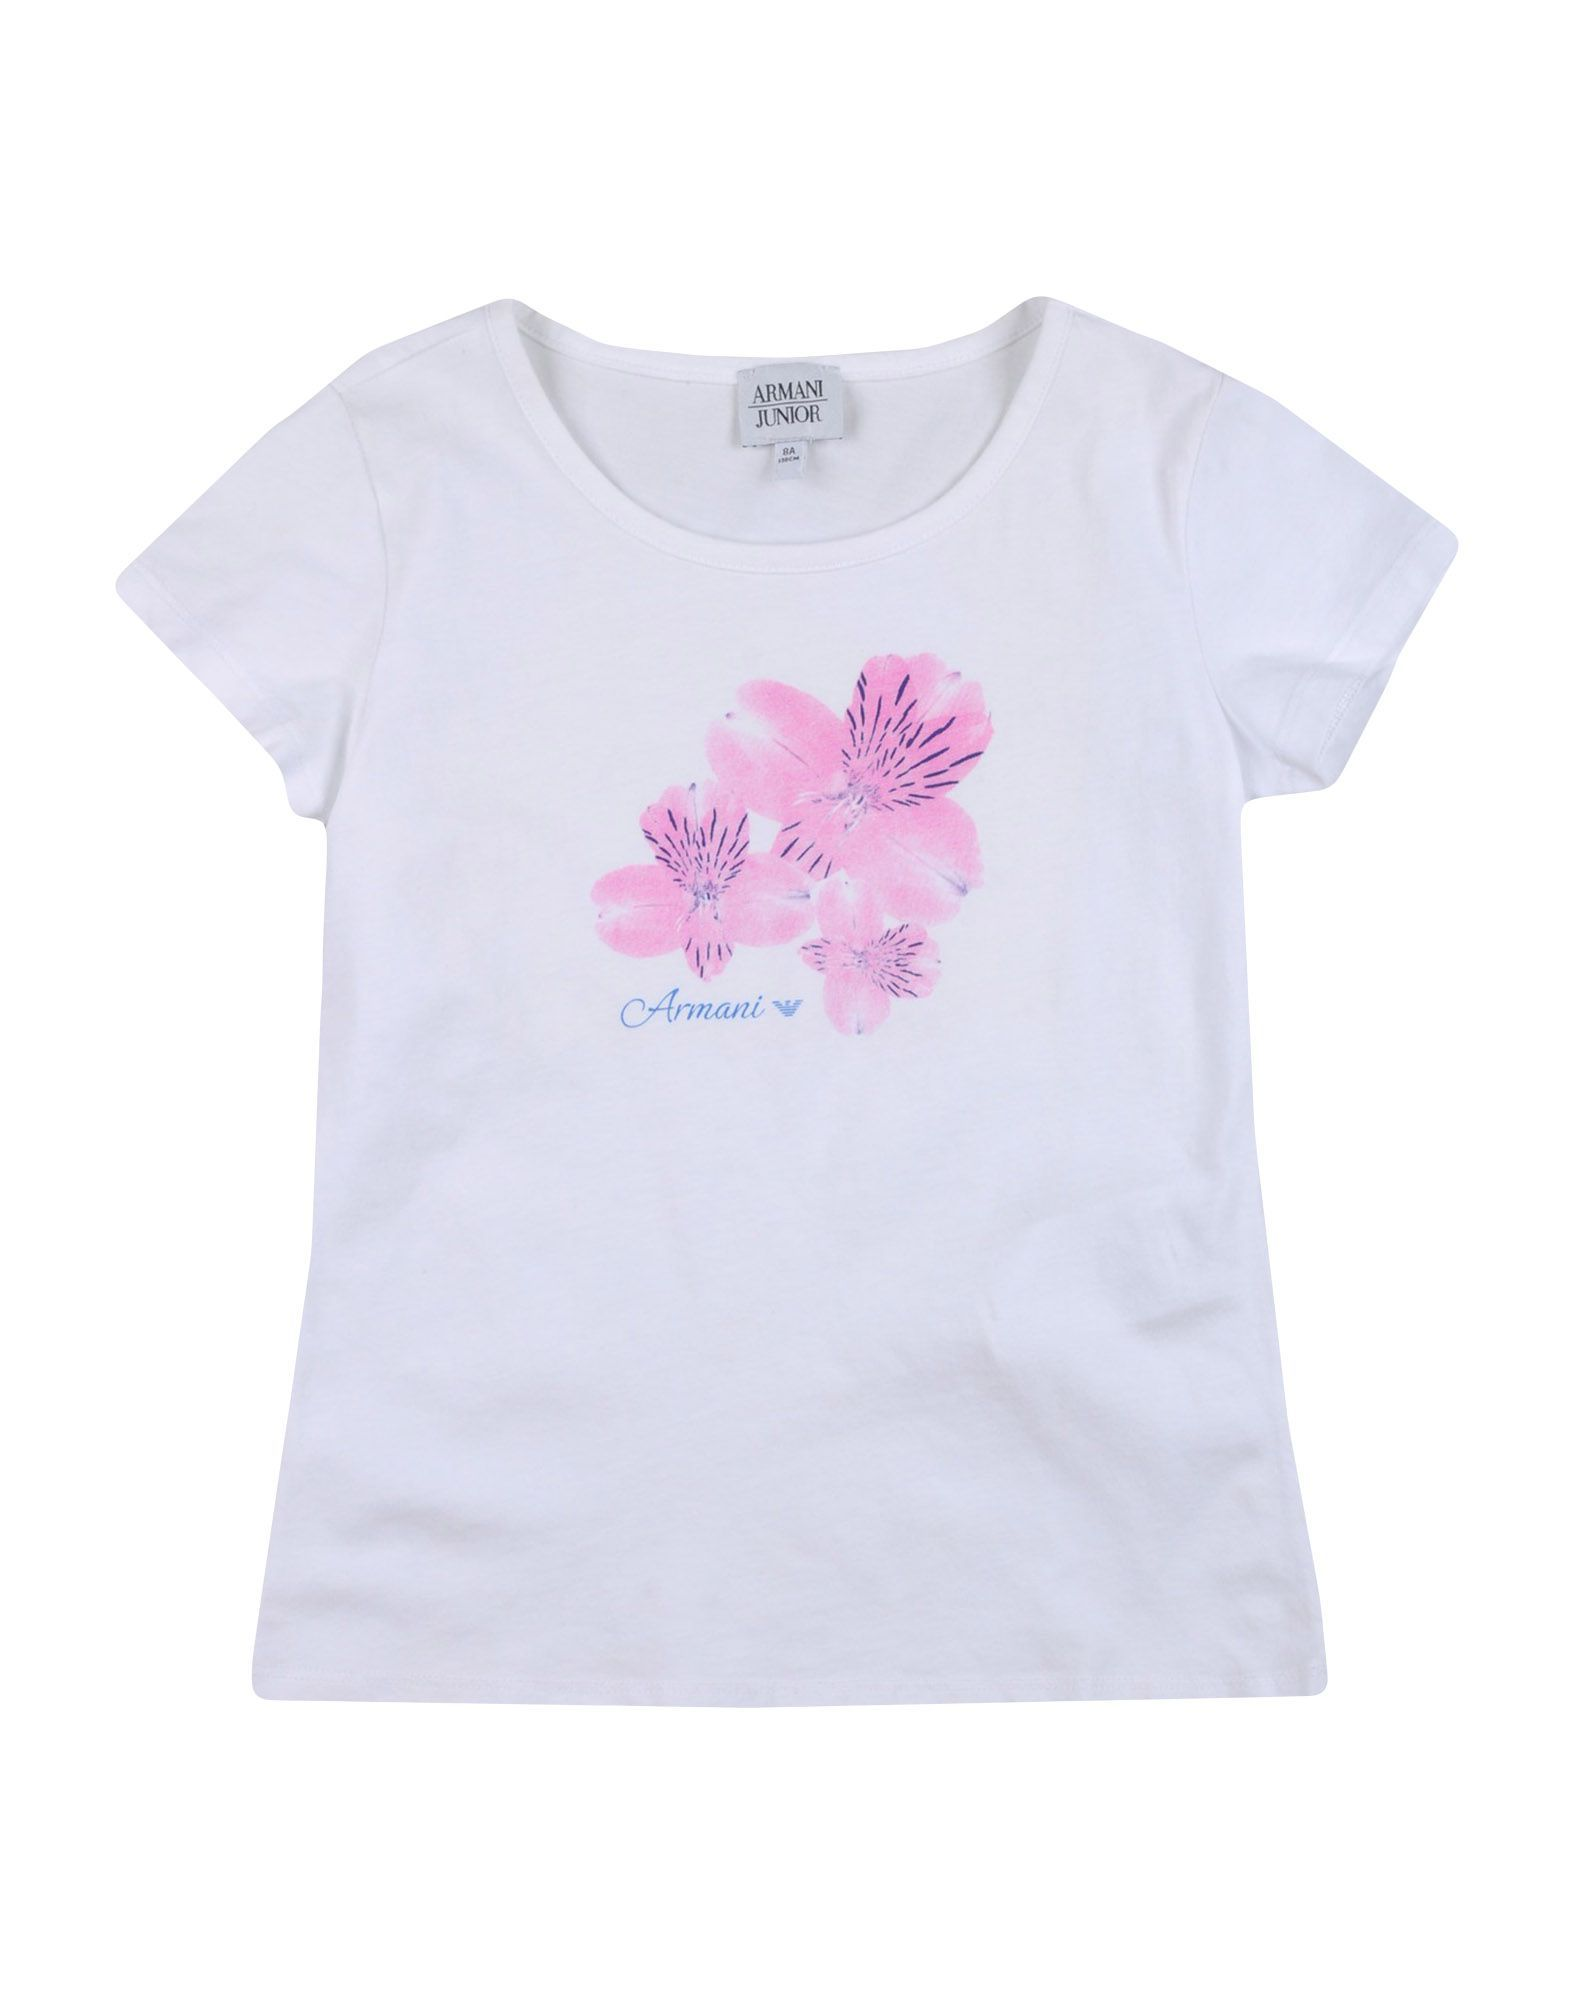 TOPWEAR Armani Junior White Girl Cotton